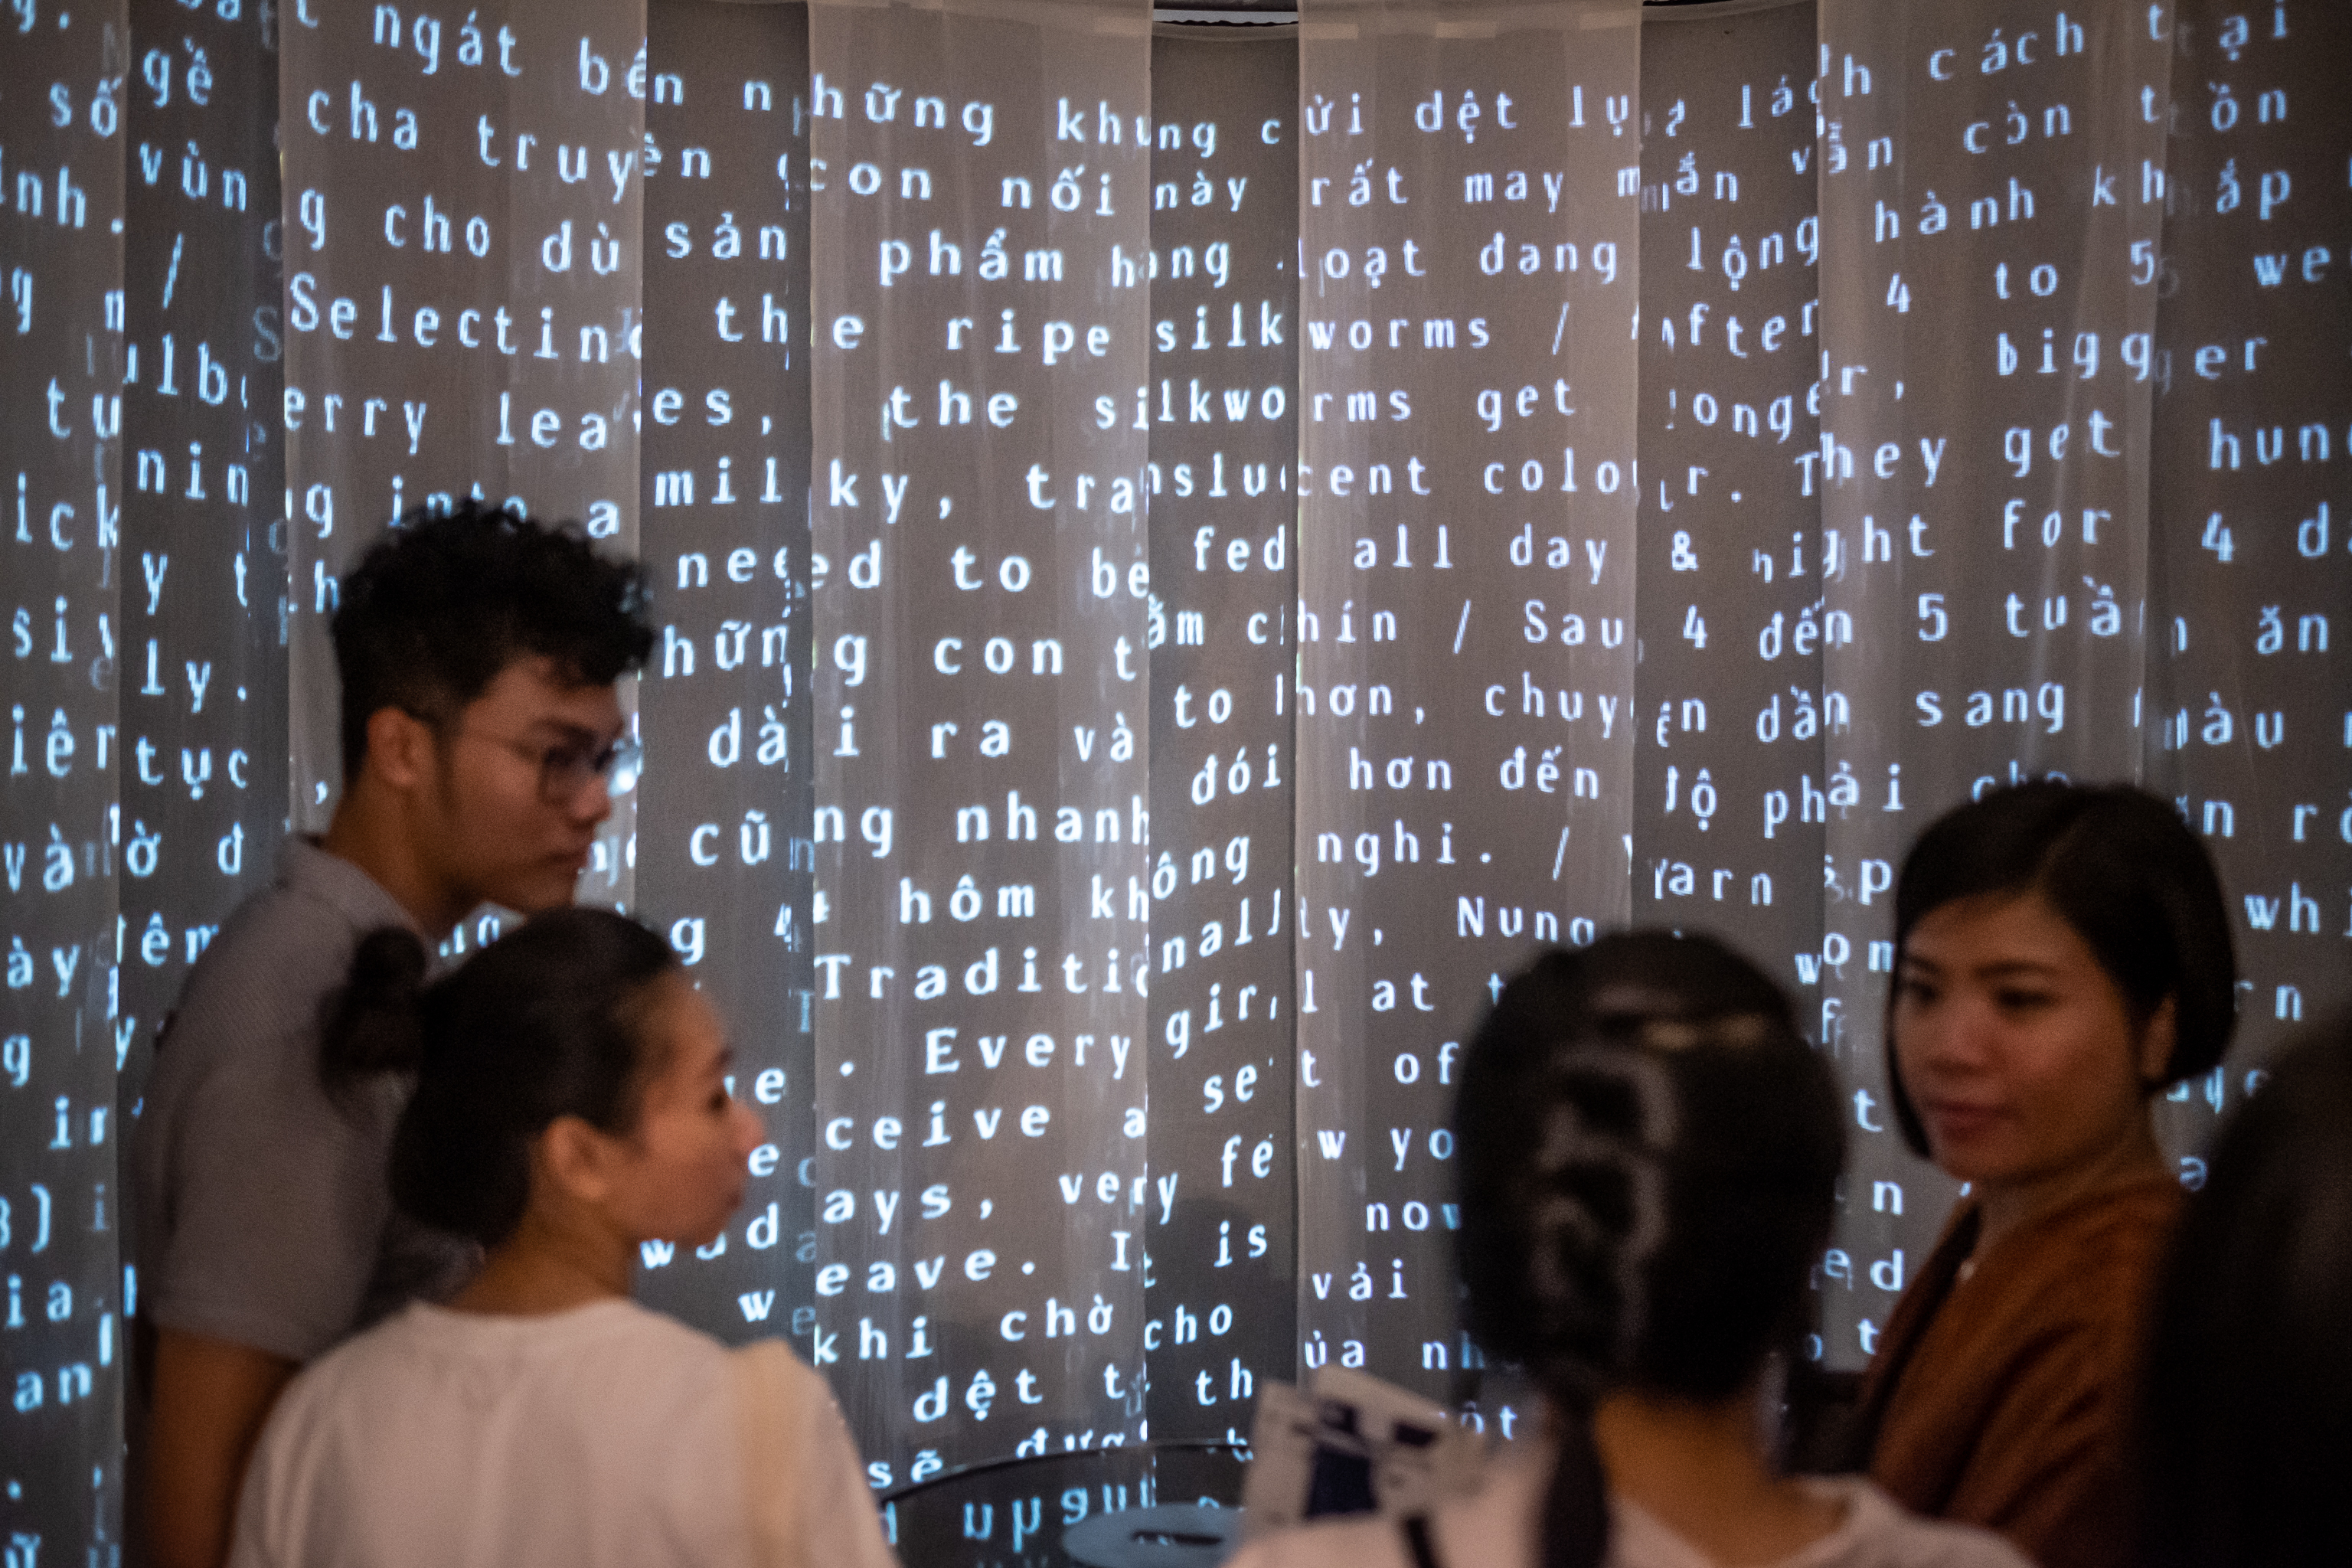 Work_Room_Four_Khải_Opening_21052020-8